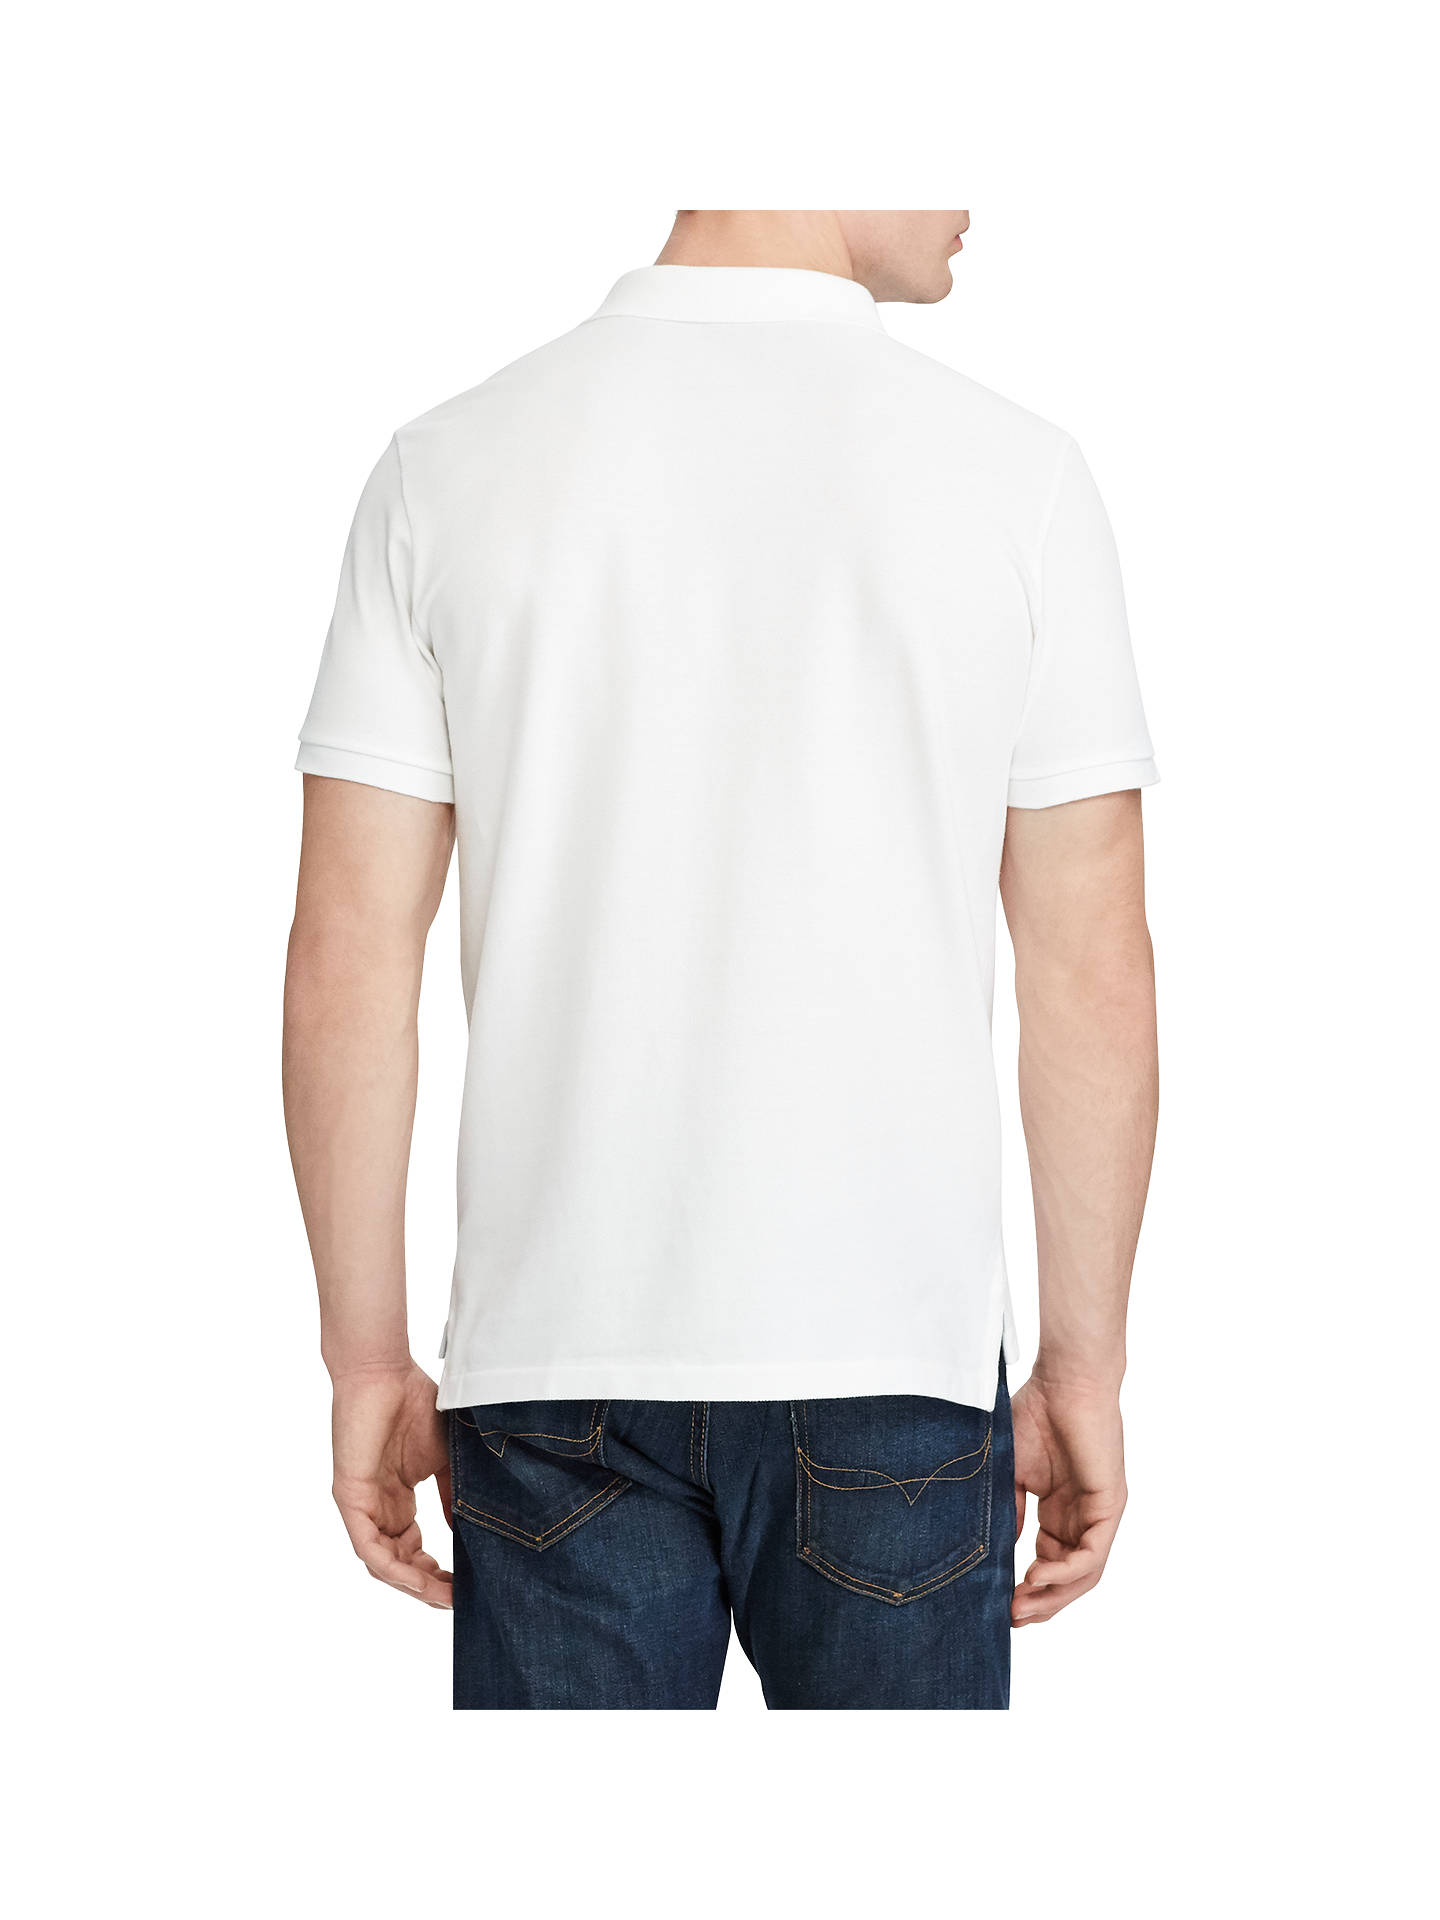 BuyPolo Ralph Lauren Short Sleeve Custom Slim Polo Shirt, White, S Online at johnlewis.com